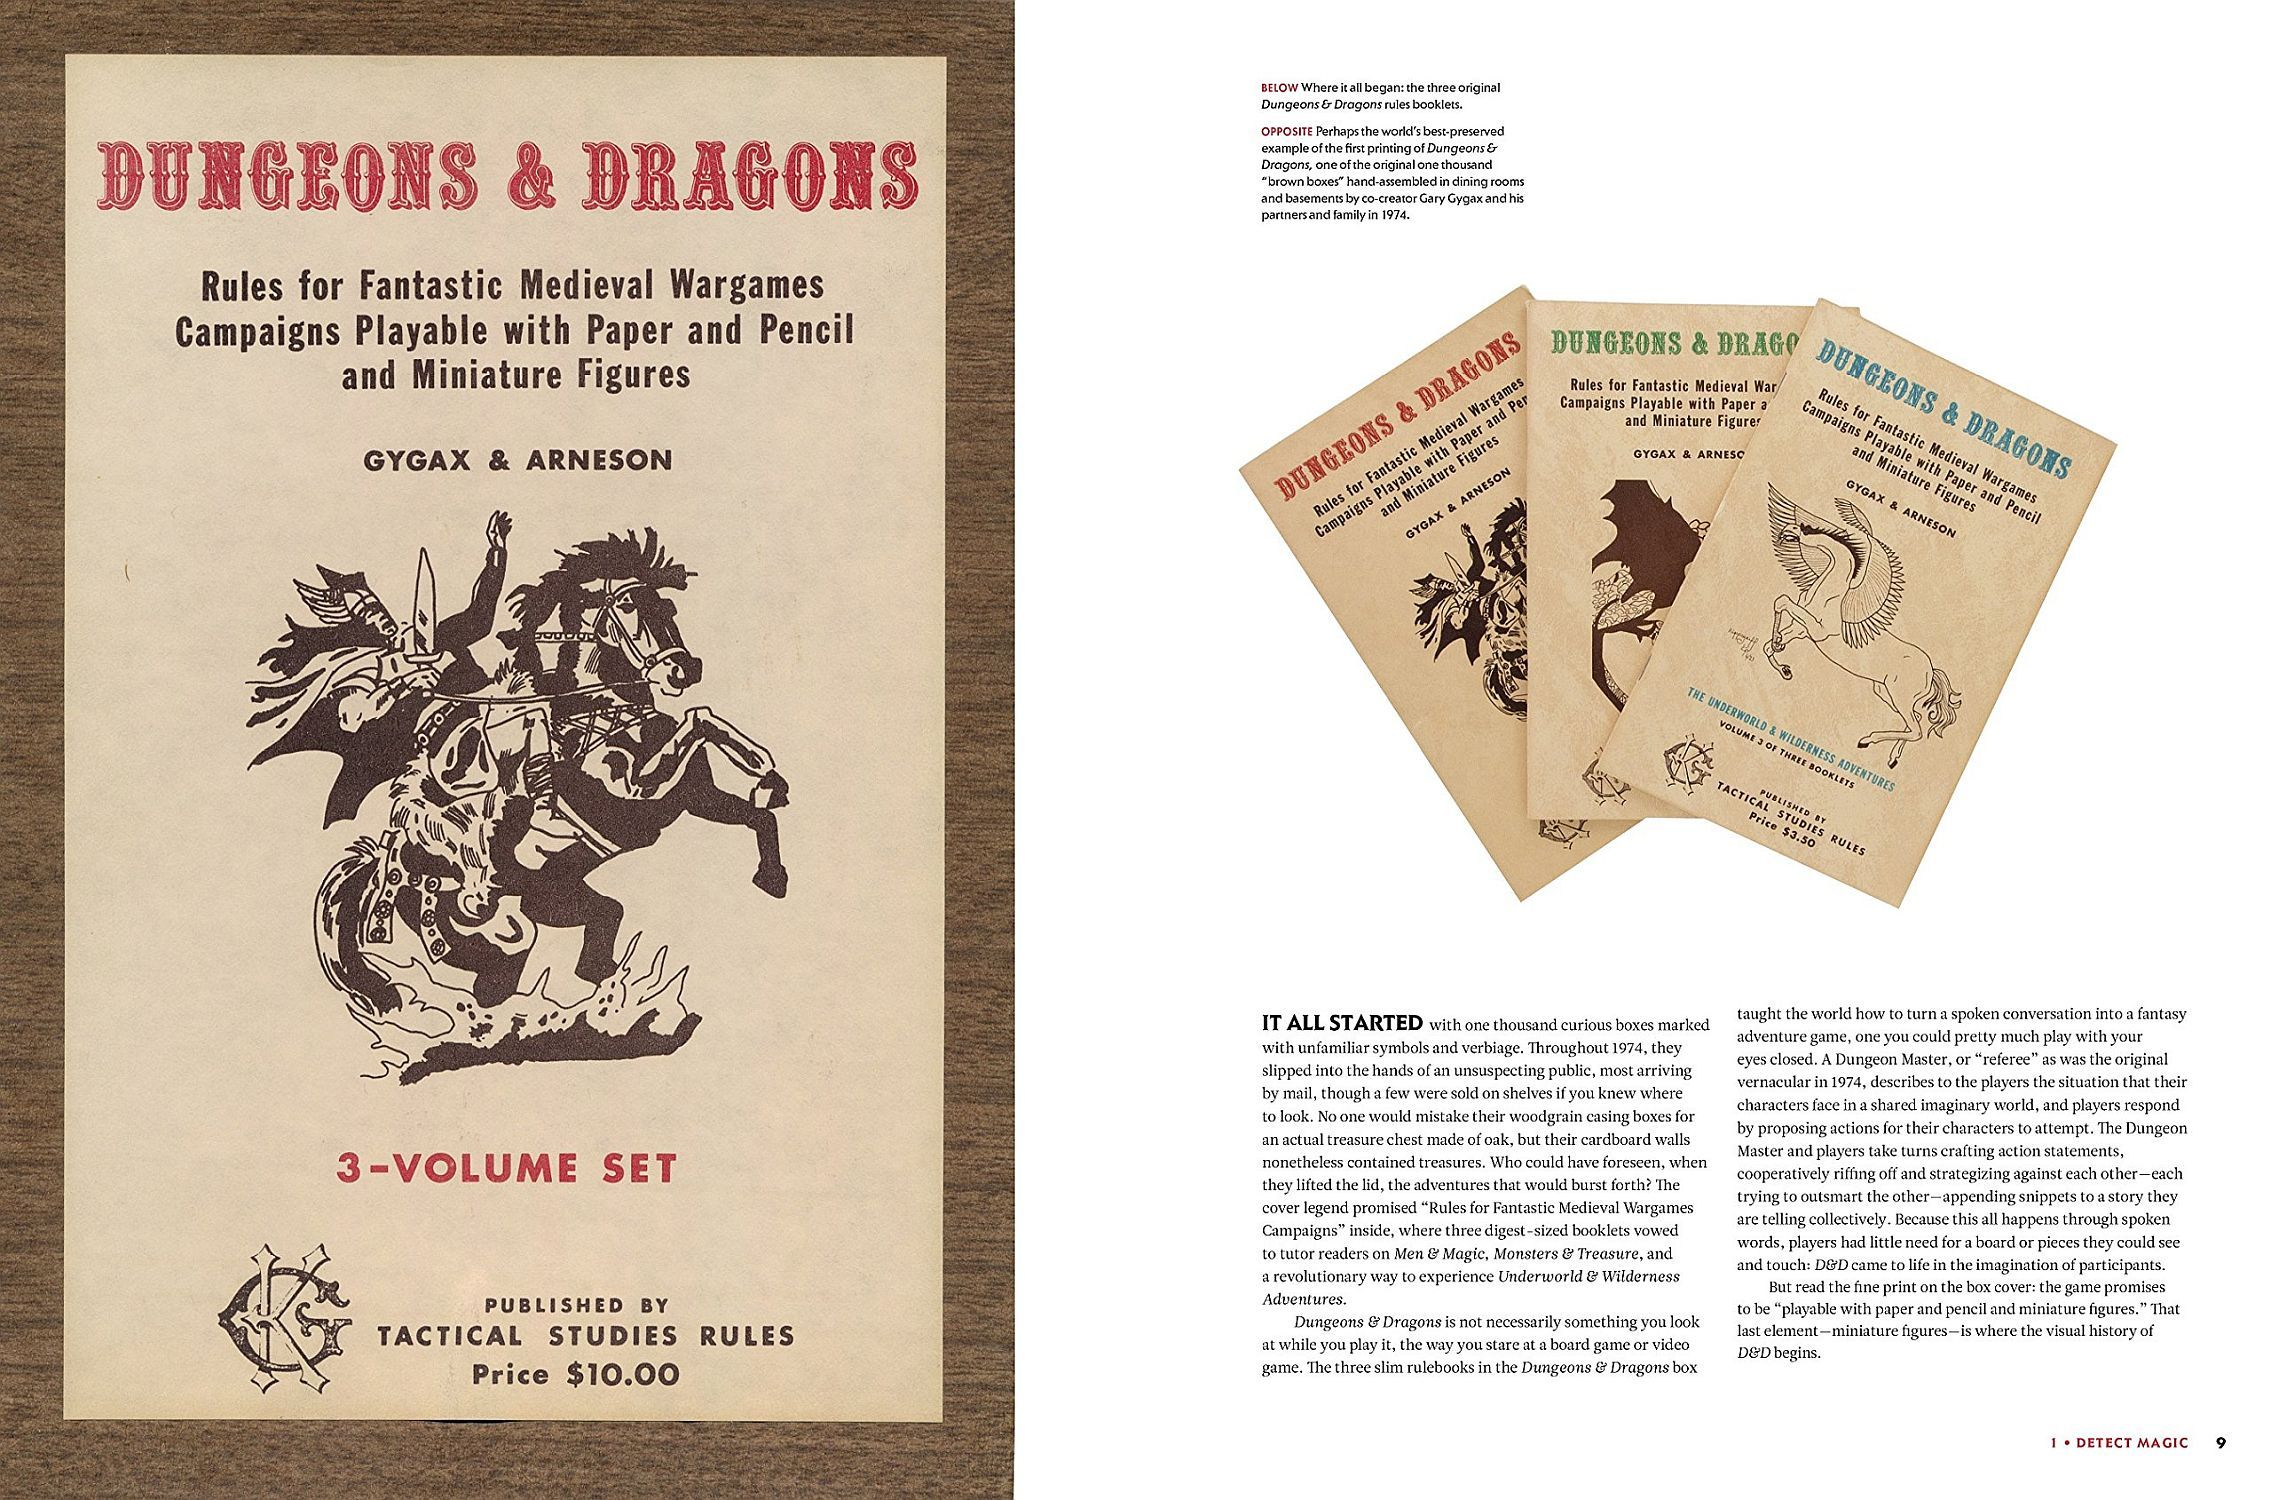 Dungeons and Dragons Art and Arcana: A Visual History (Hardcover) - 2